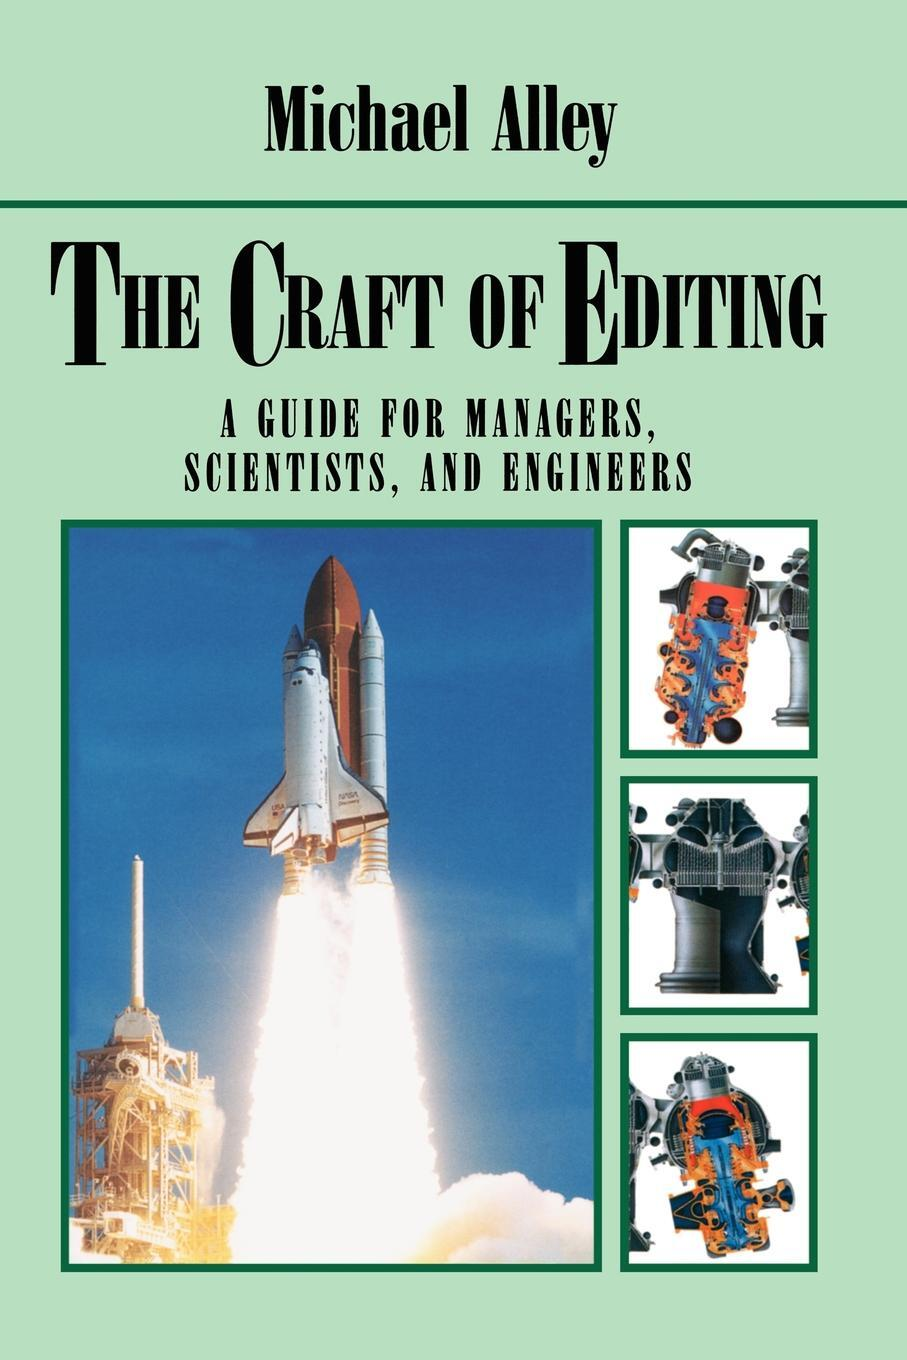 The Craft of Editing. A Guide for Managers, Scientists, and Engineers